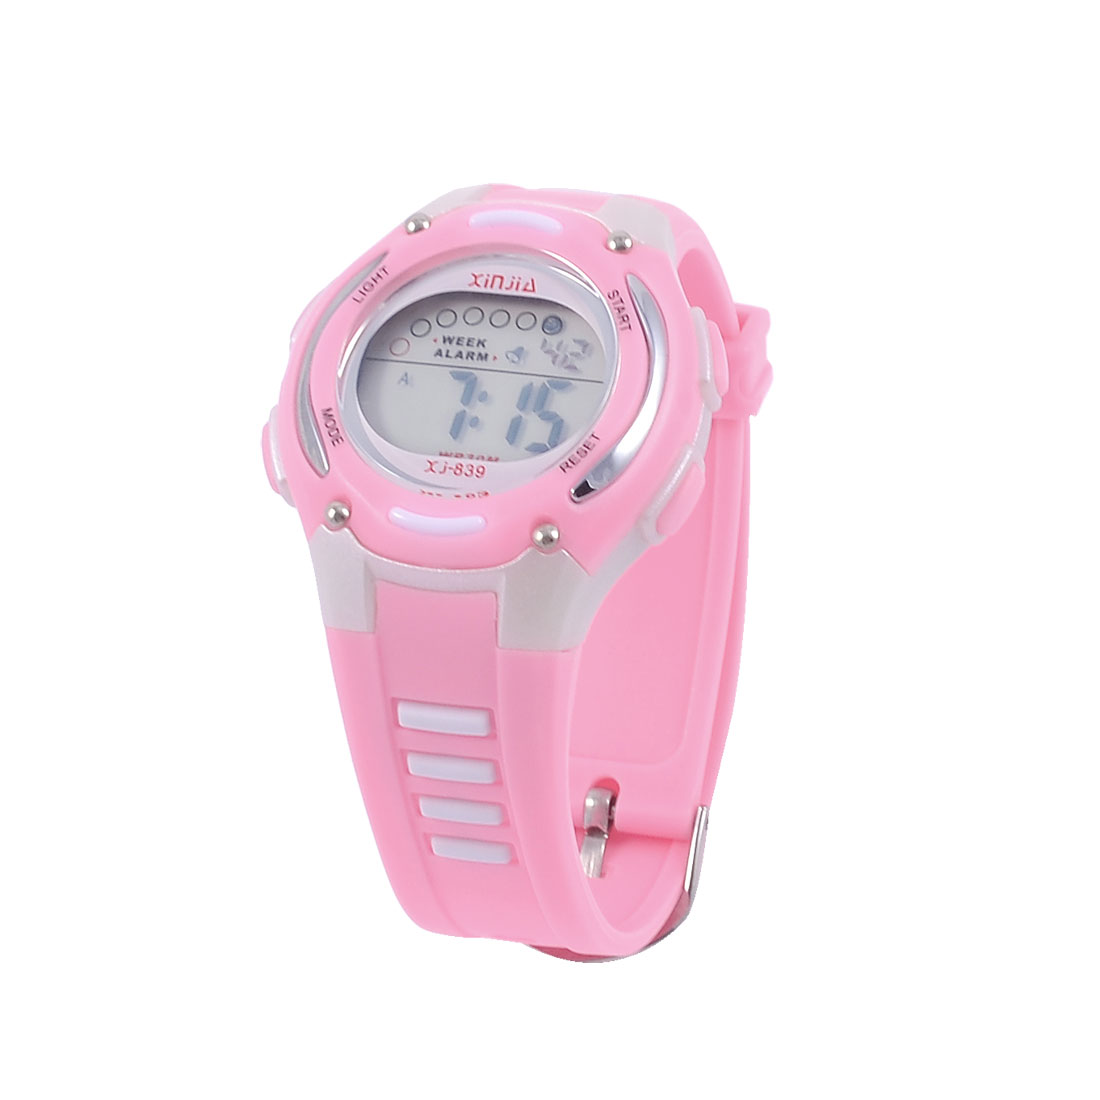 Ladies Soft Plastic Adjustable Wrist Band Water Resistant Stopwatch Digital Watch Pink